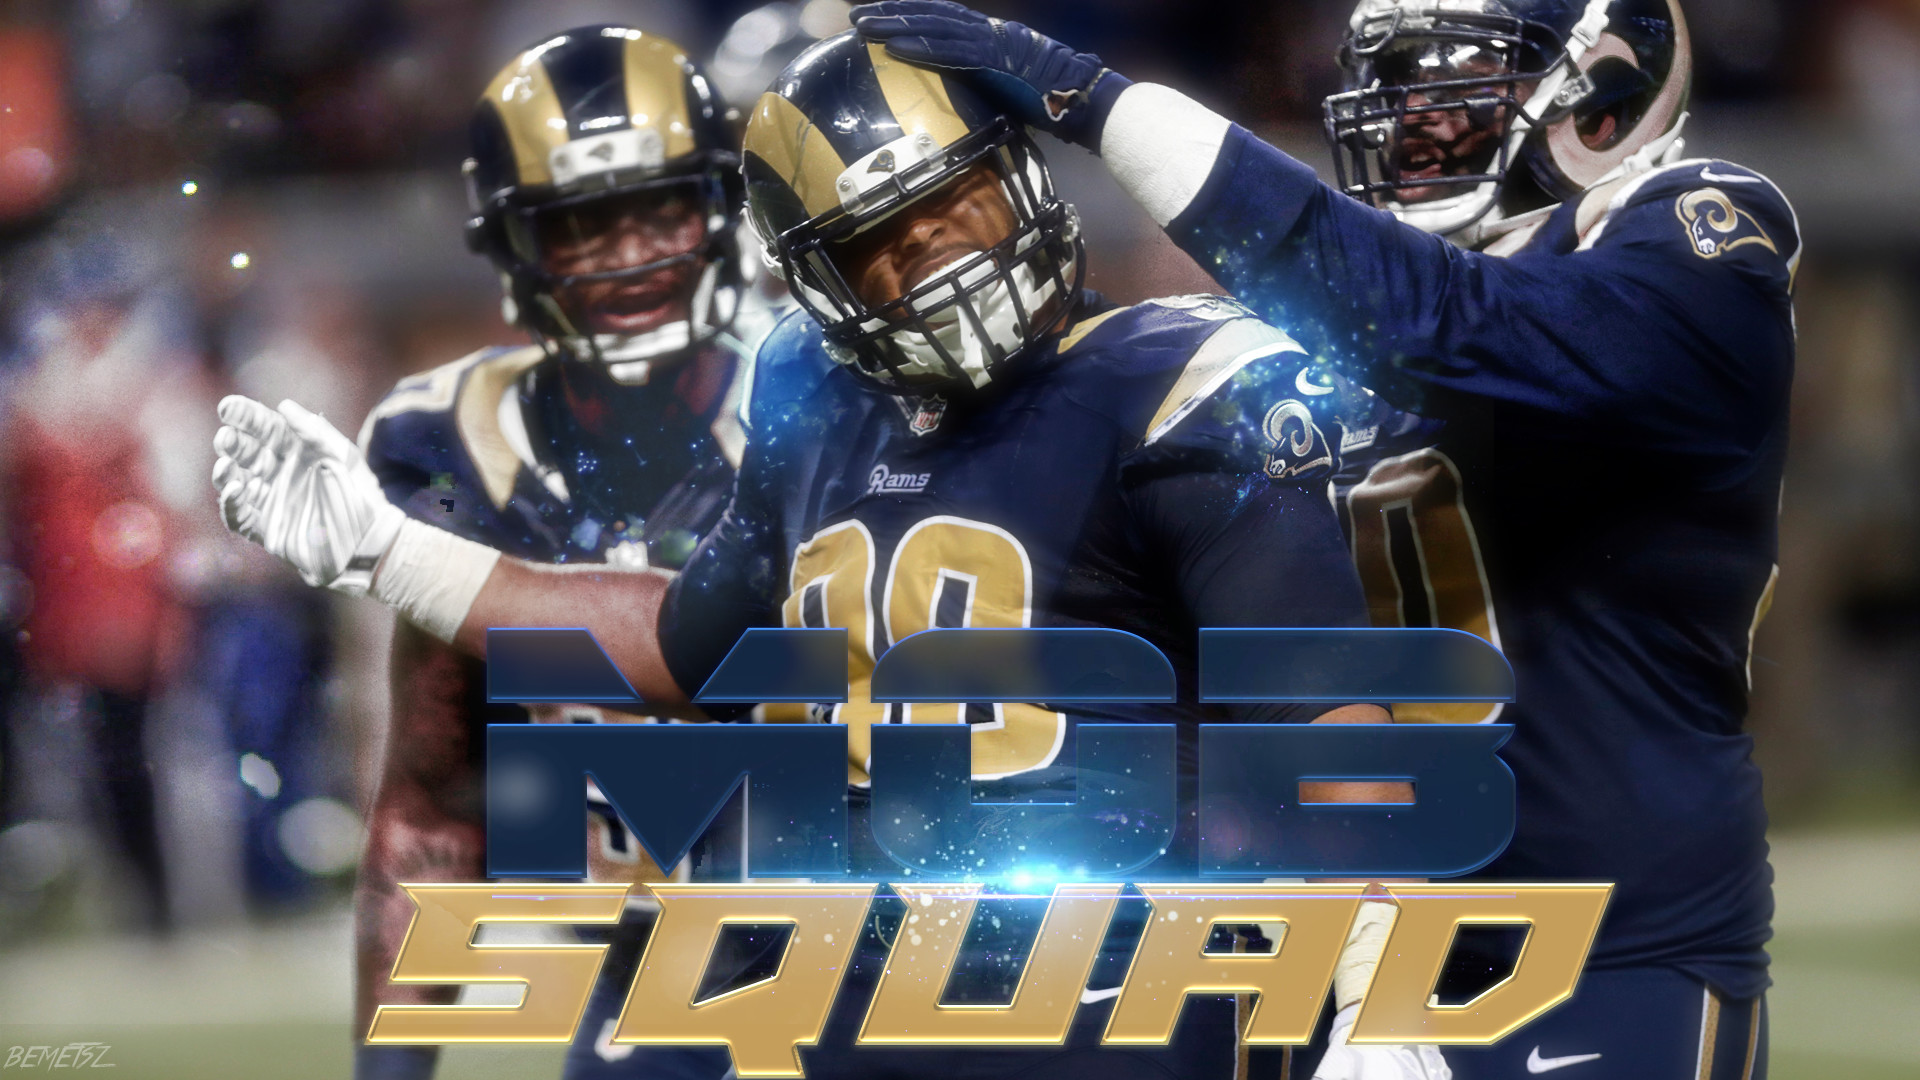 1920x1080 St. Louis Rams Mob Squad Wallpaper